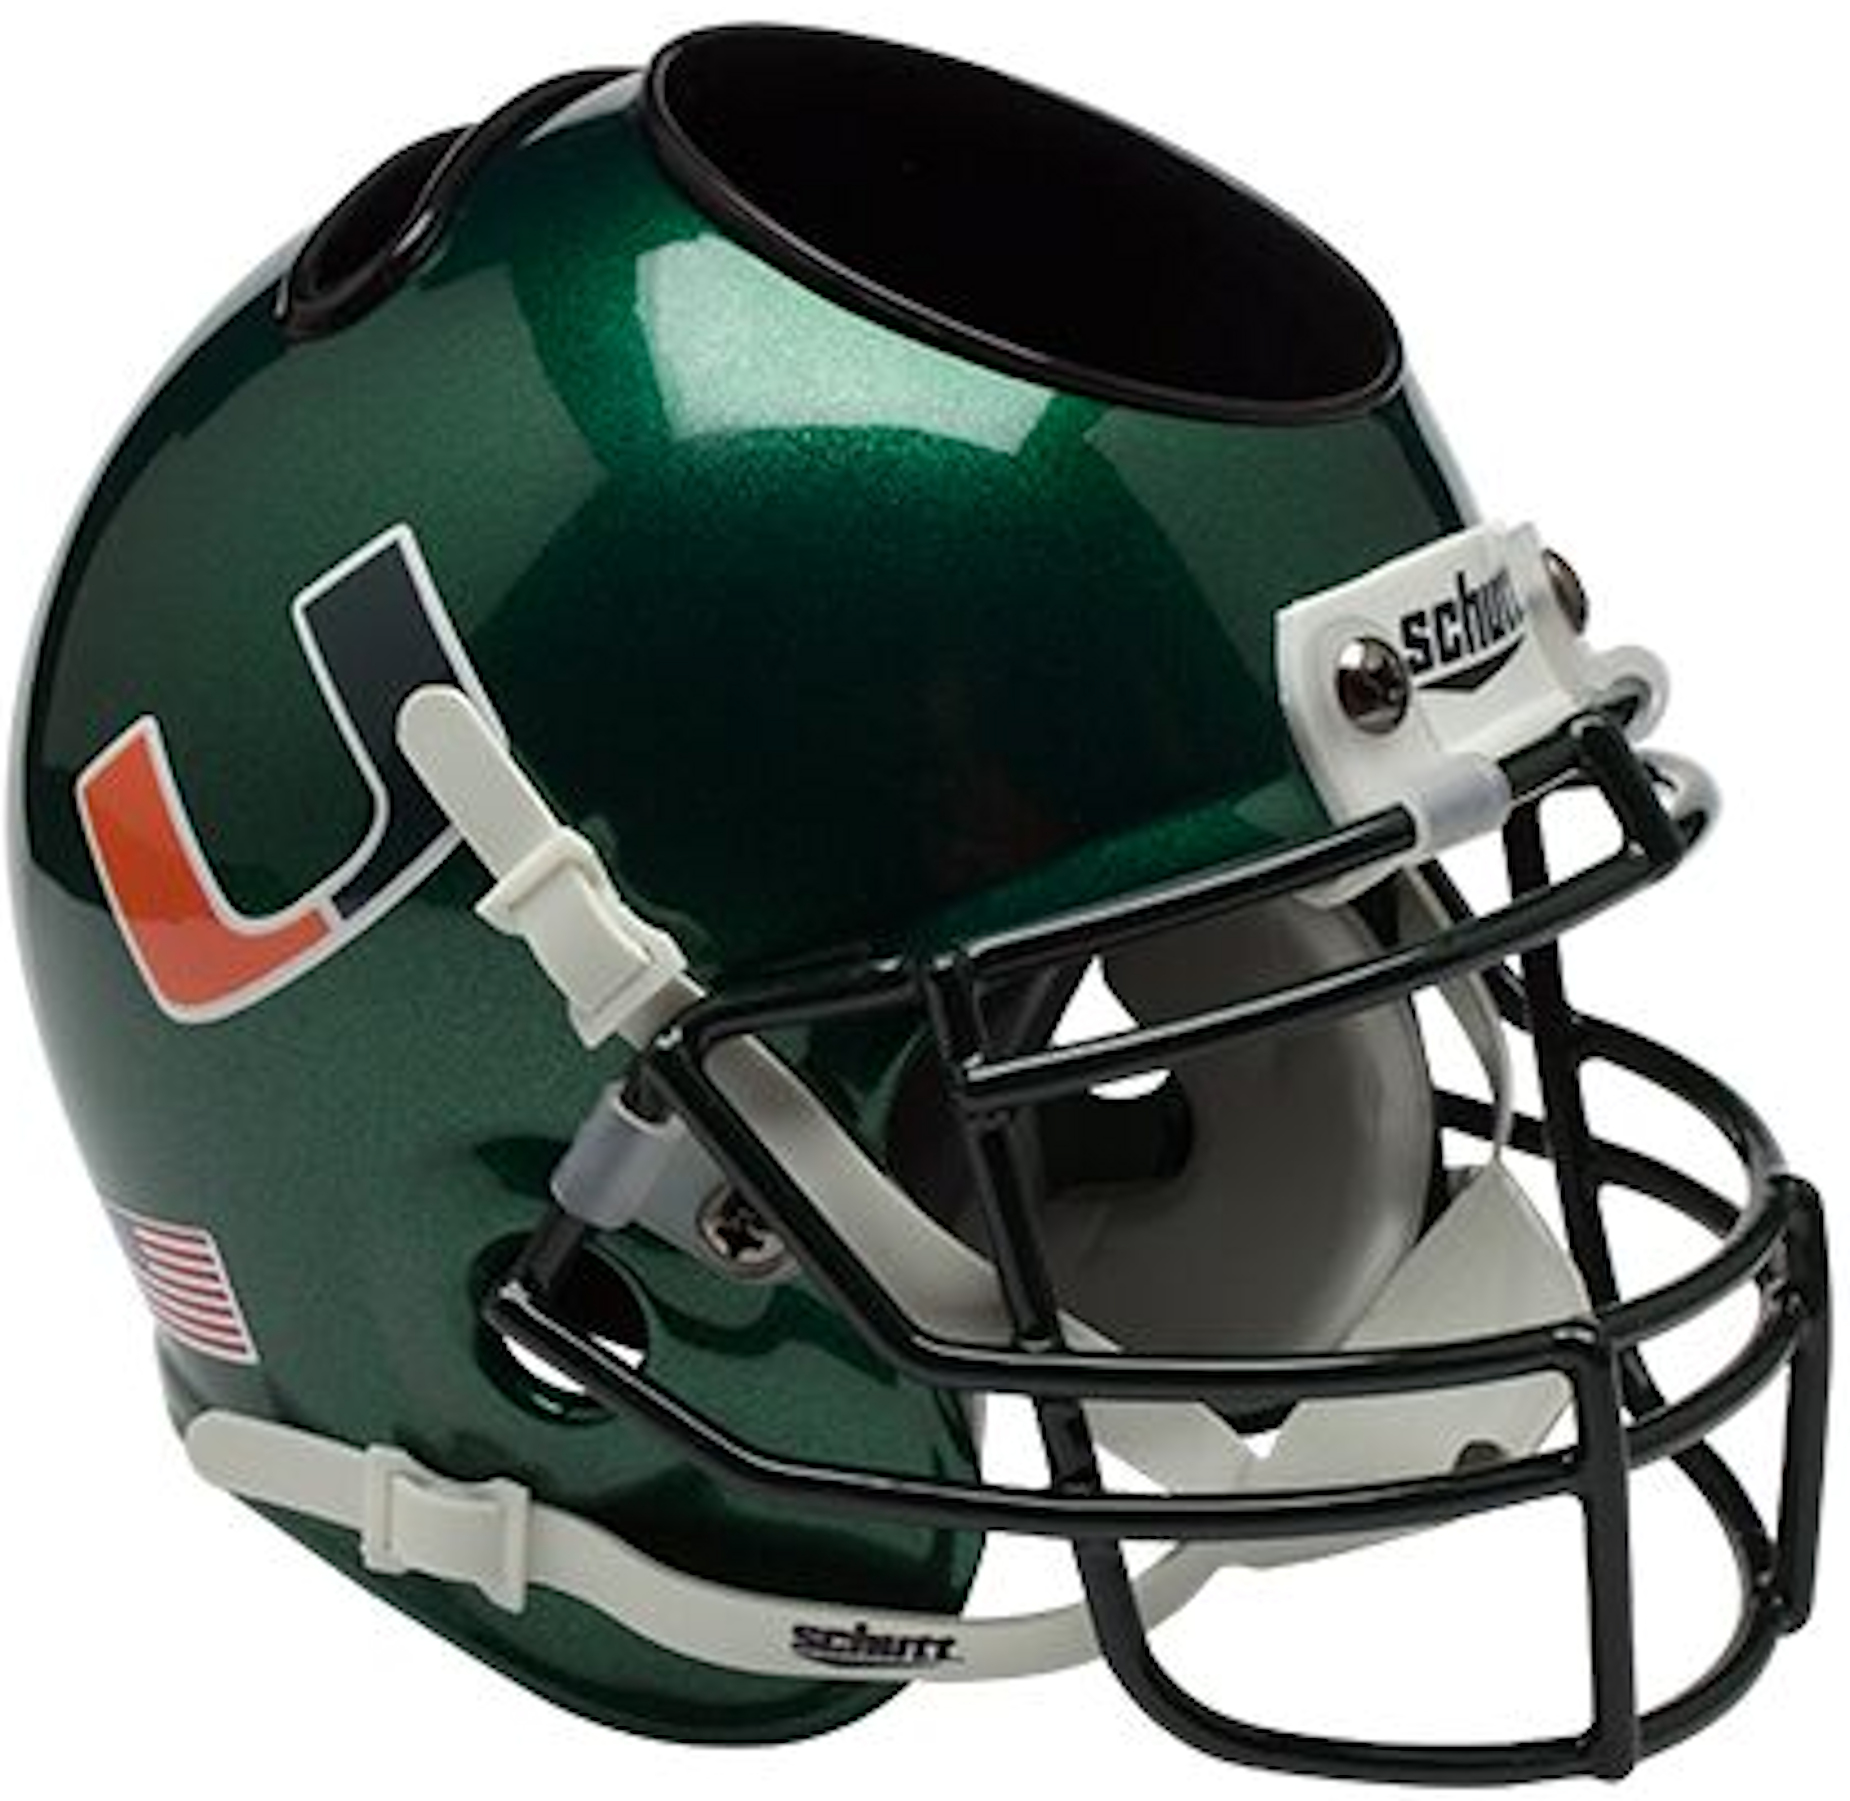 Miami Hurricanes Miniature Football Helmet Desk Caddy <B>Green</B>